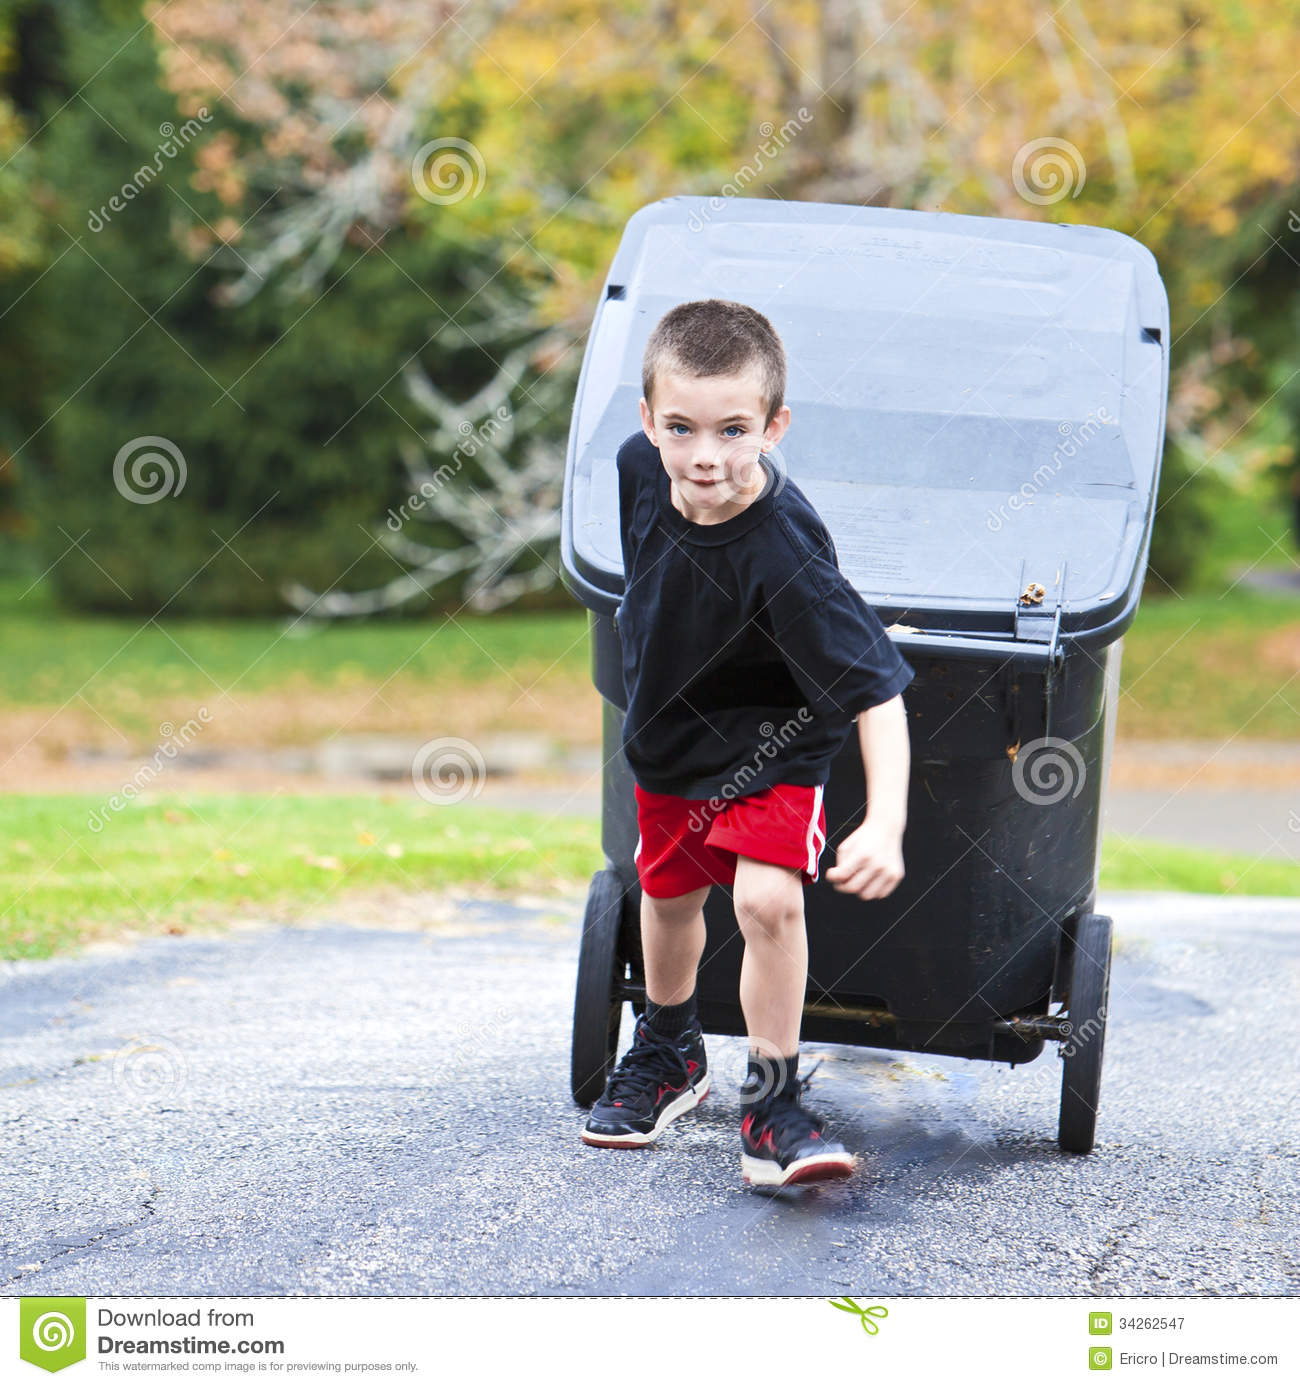 Image result for boy takes out garbage""